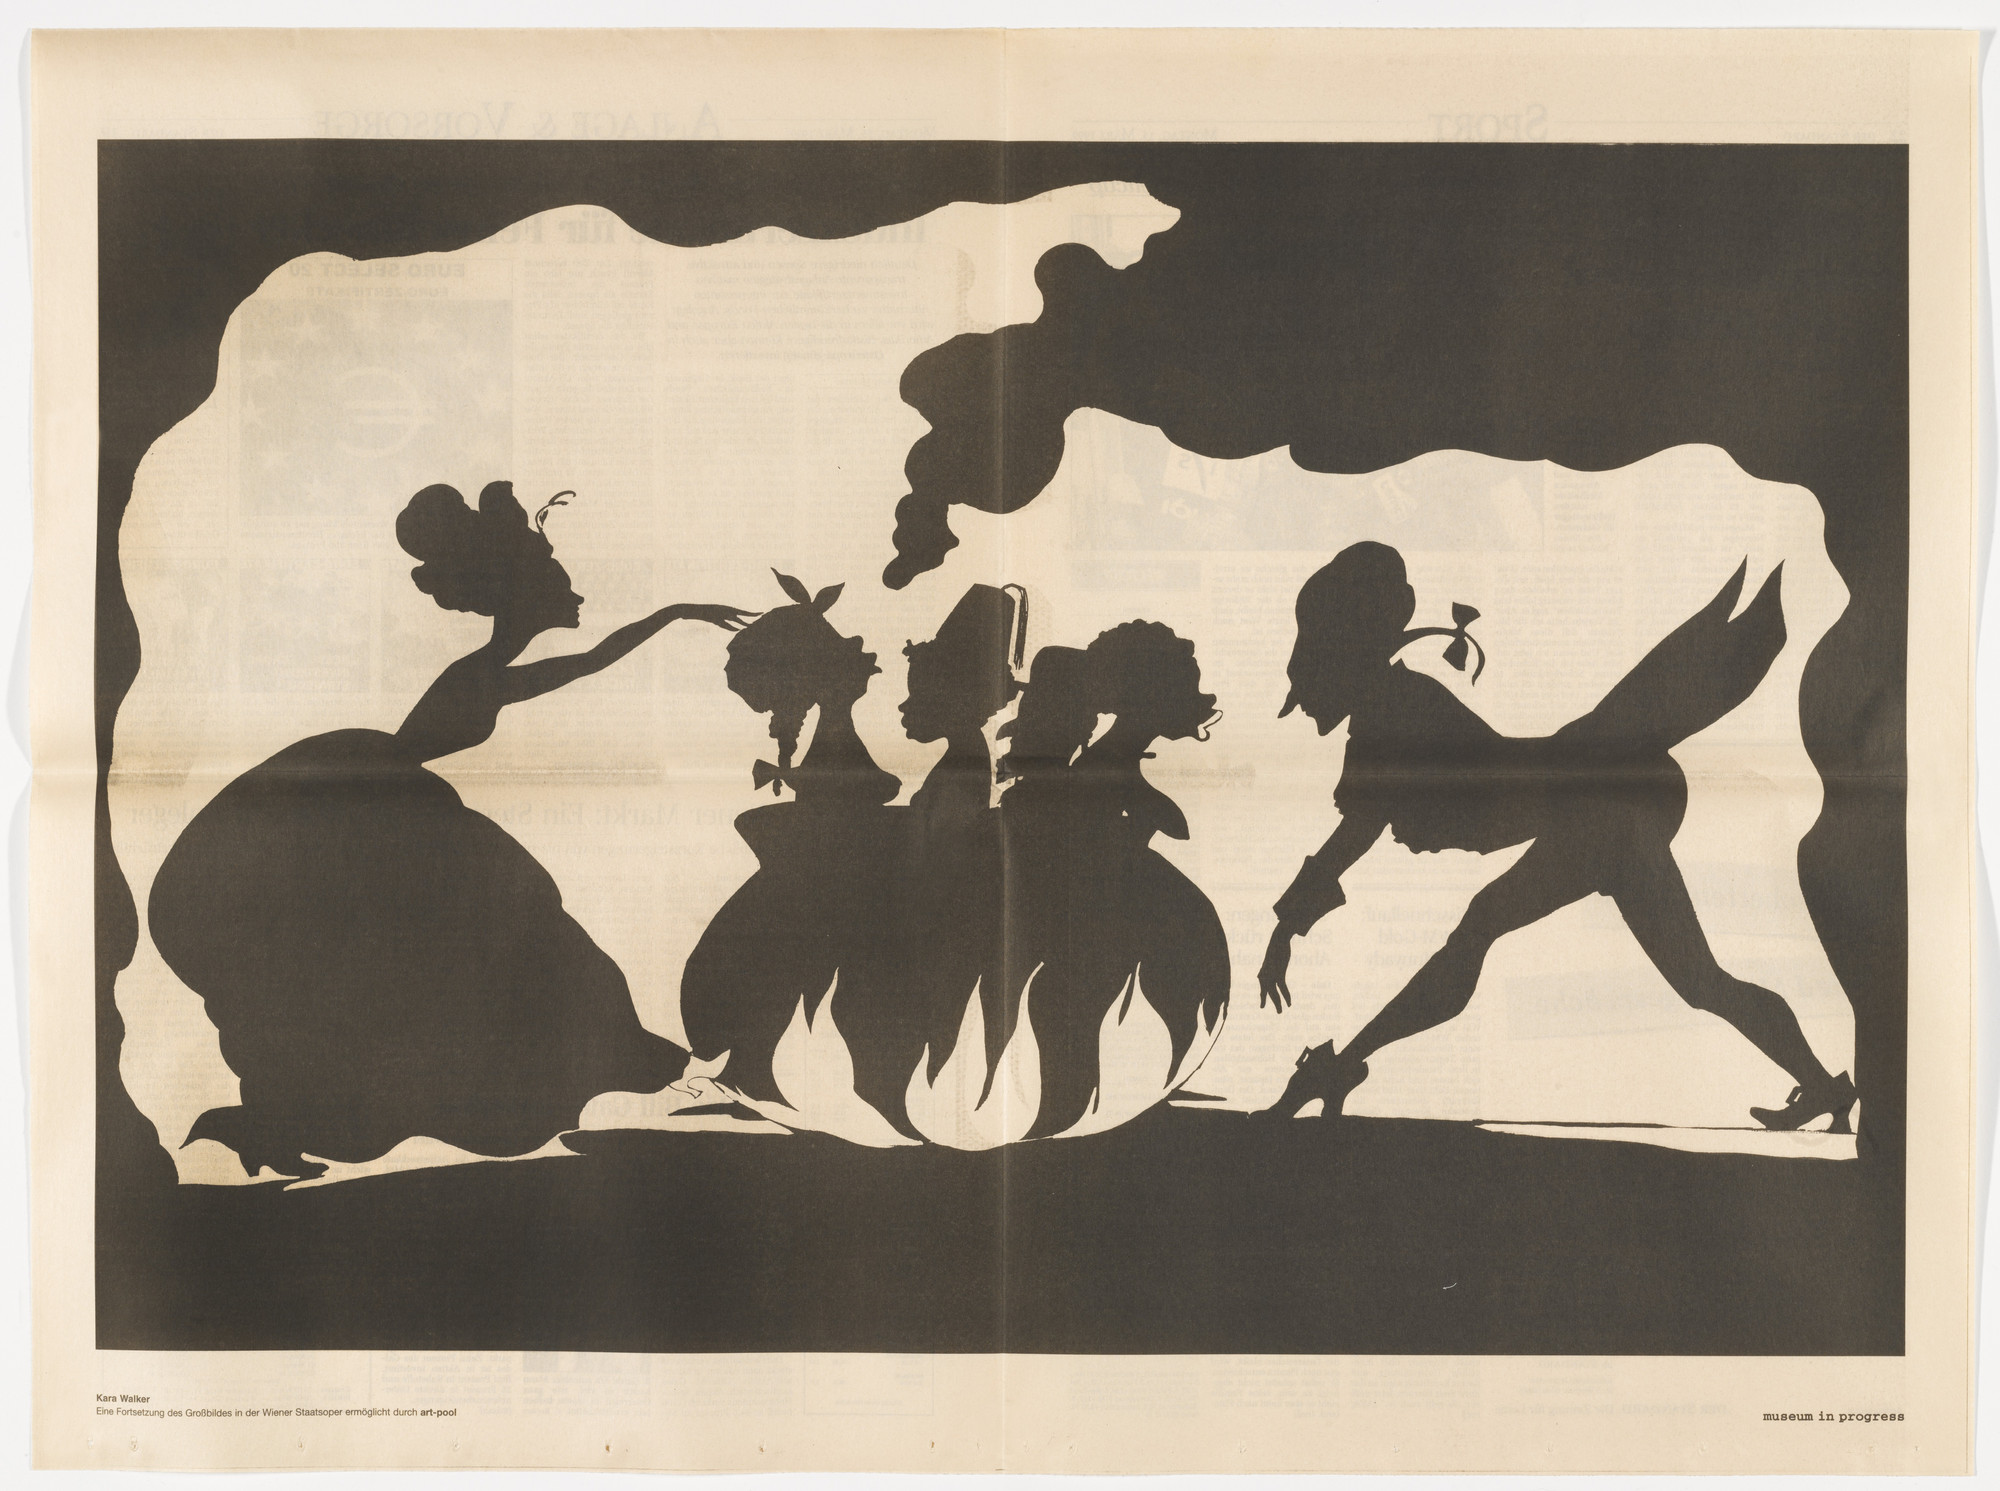 Kara Walker. Untitled from the Museum in Progress project Safety Curtain. published 1999